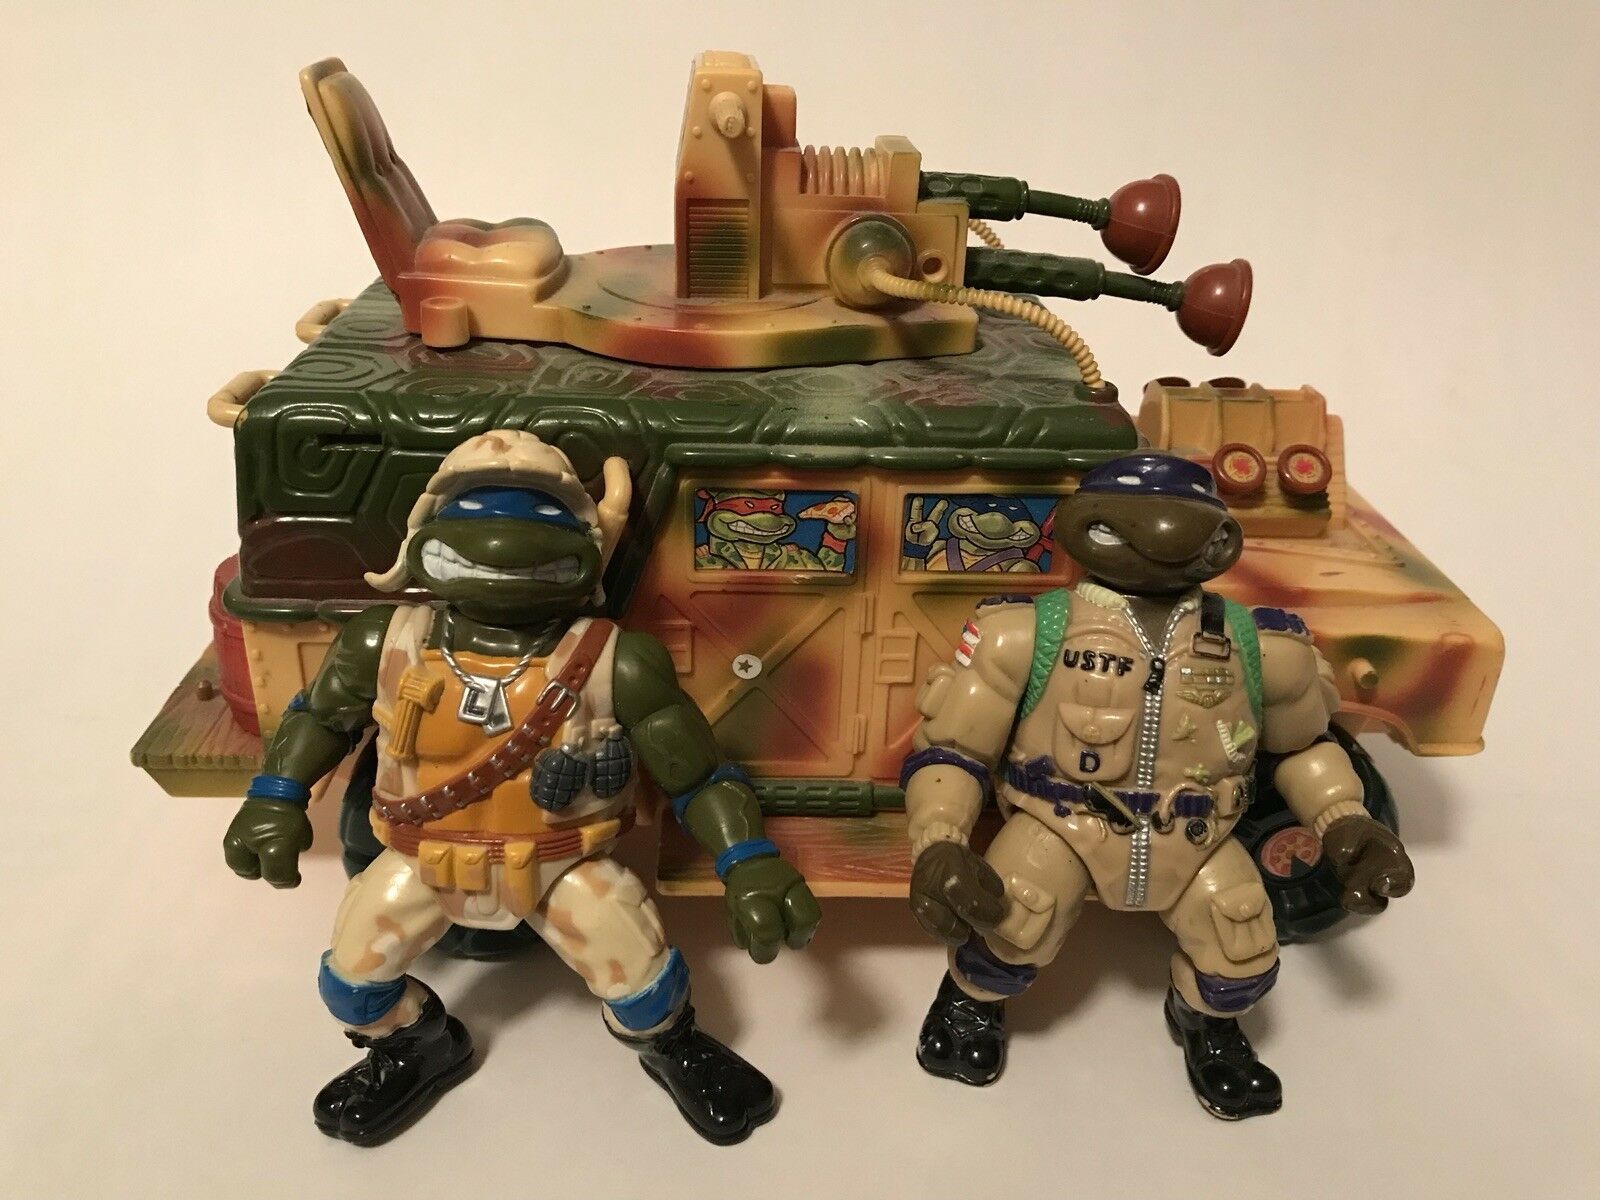 Teenage Mutant Ninja Turtles Playmates TMNT Vintage Military Sandcruiser Sandcruiser Sandcruiser 1992 d7fccf